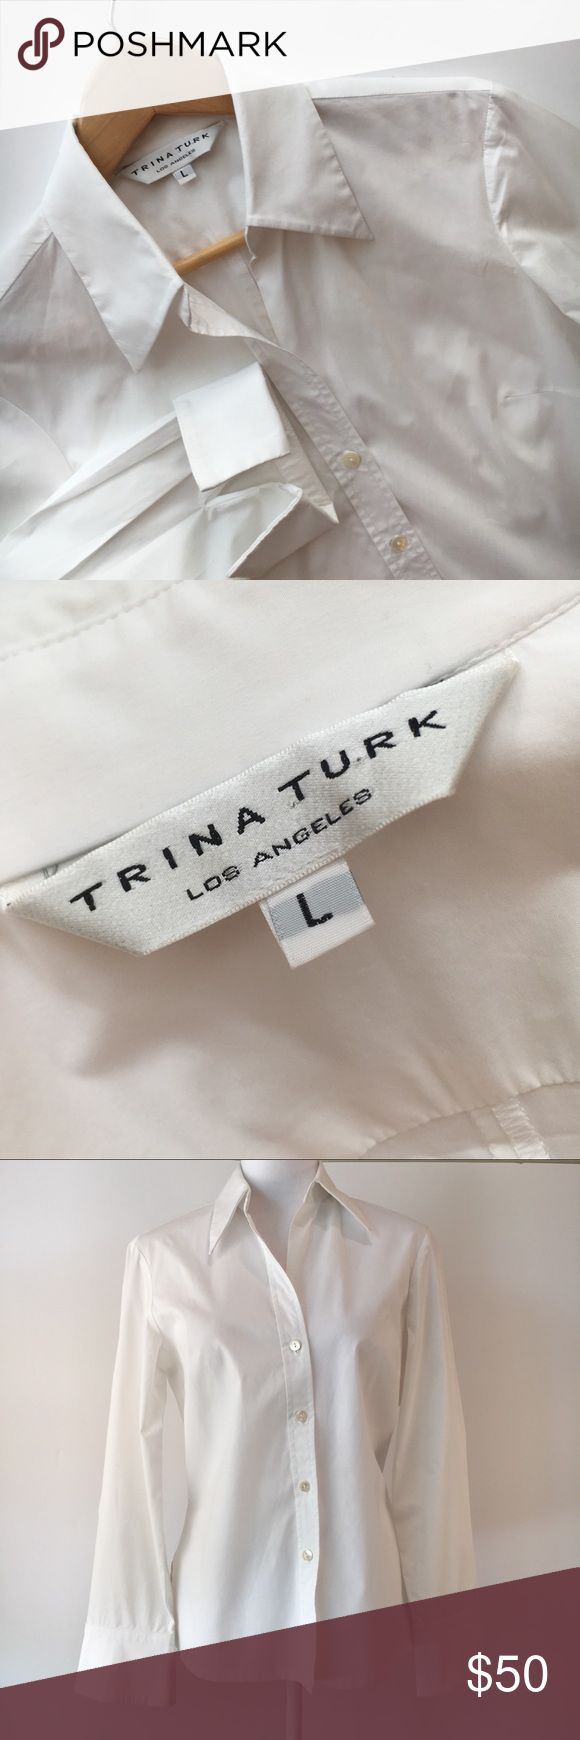 """Trina Turk white work French cuffs career shirt L Crisp, classic white Trina Turk fitted button-down shirt—an essential for smart style in the office and beyond. Pointed collar and French cuffs. Wear extra-long cuffs folded back and closed with cufflinks or fabric knots, or go casual with an undone-cuff look. 96% cotton, 4% polyurethane for great fit and stretch. EUC. No marks, holes, or pills. Size large. Approximate measurements: Bust (armpit to armpit) = 20"""", length (shoulder to hem)…"""